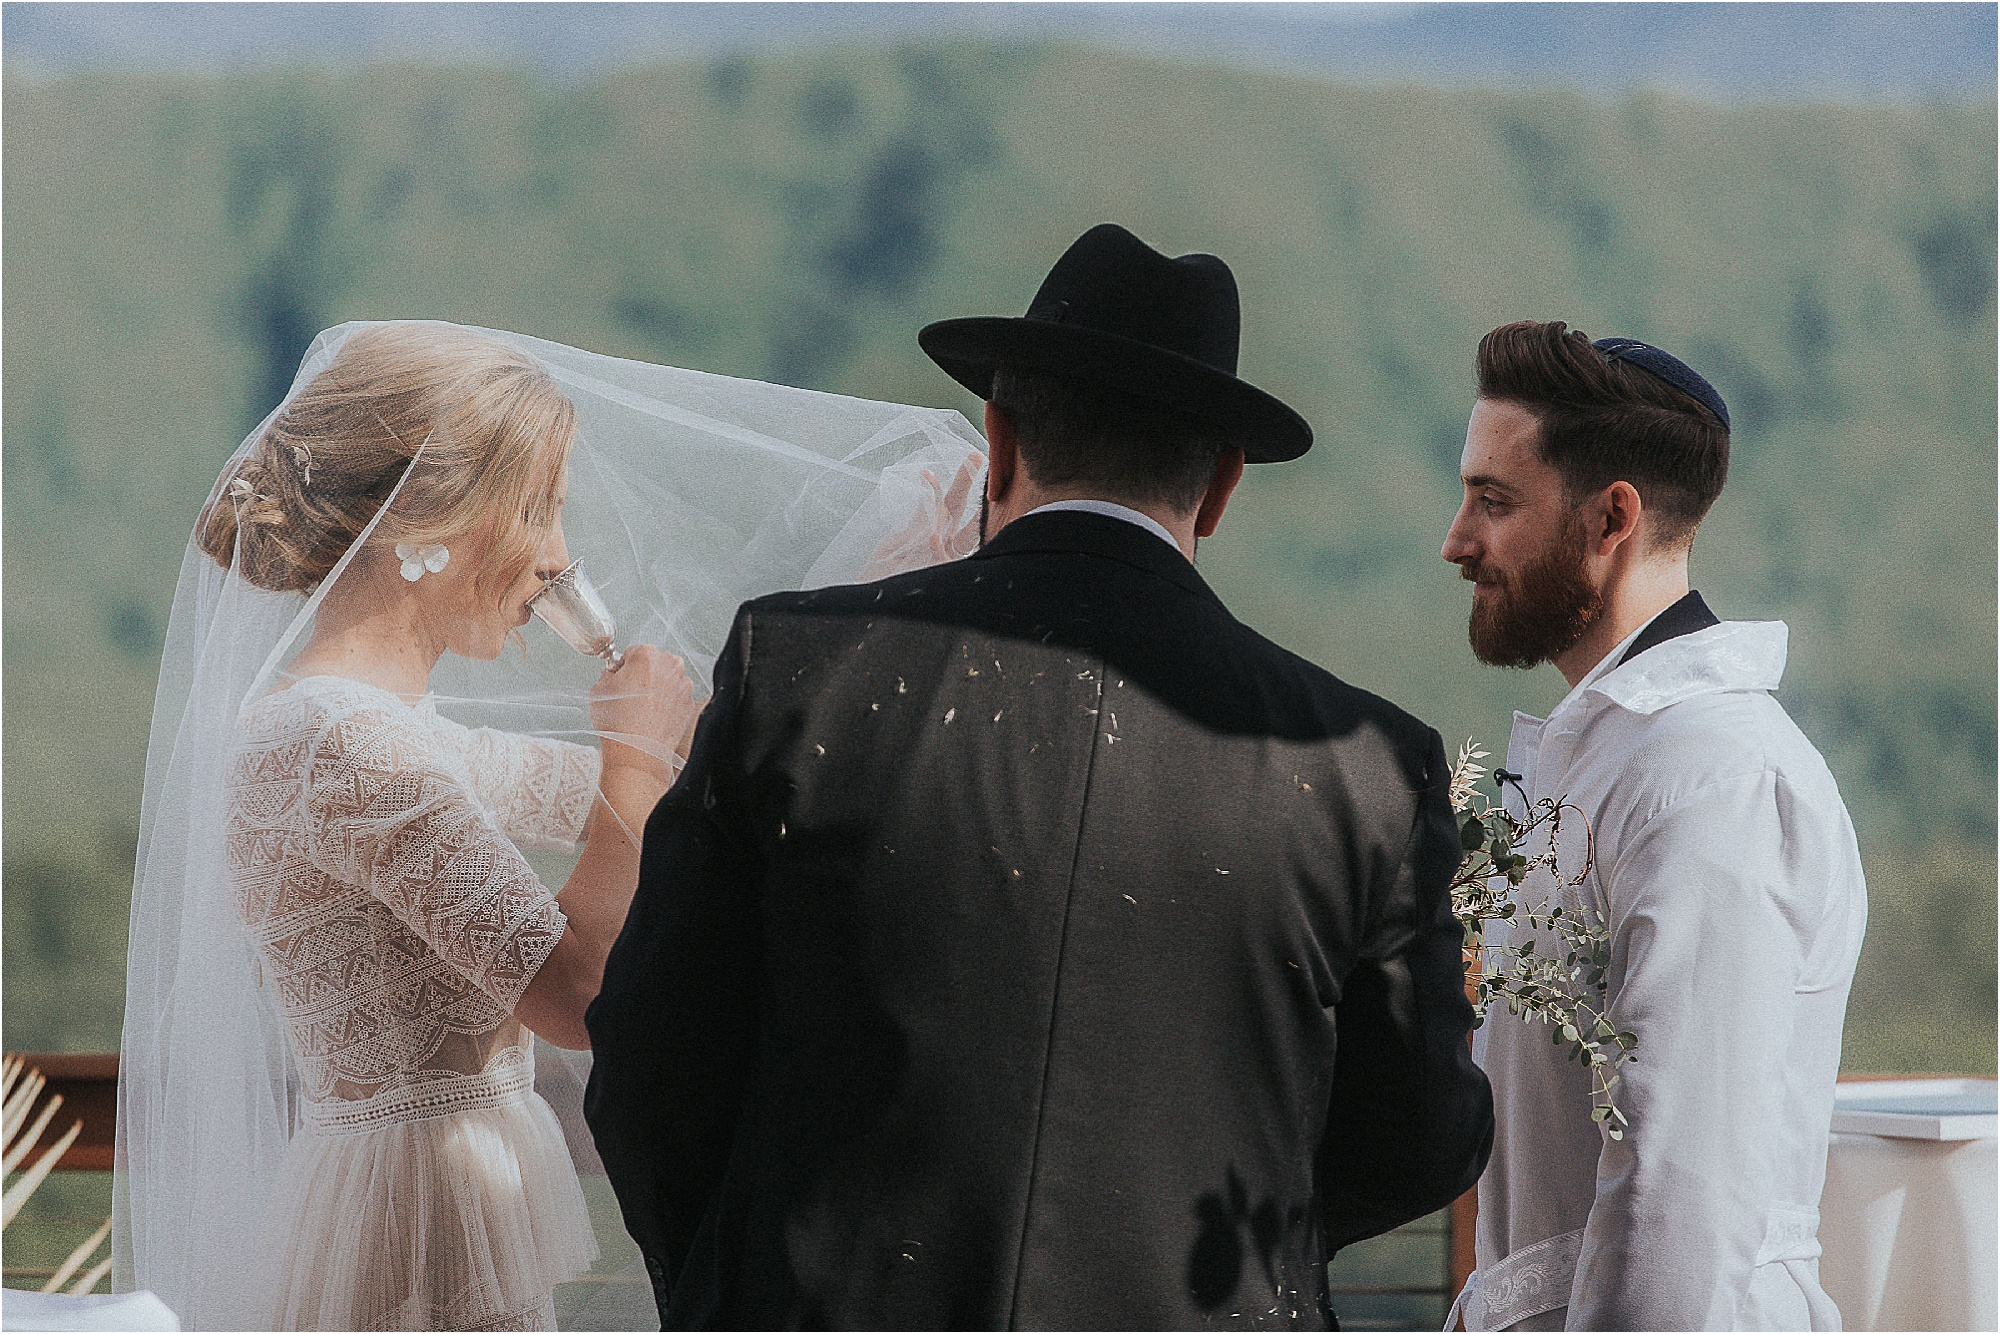 Jewish wedding ceremony and sipping wine